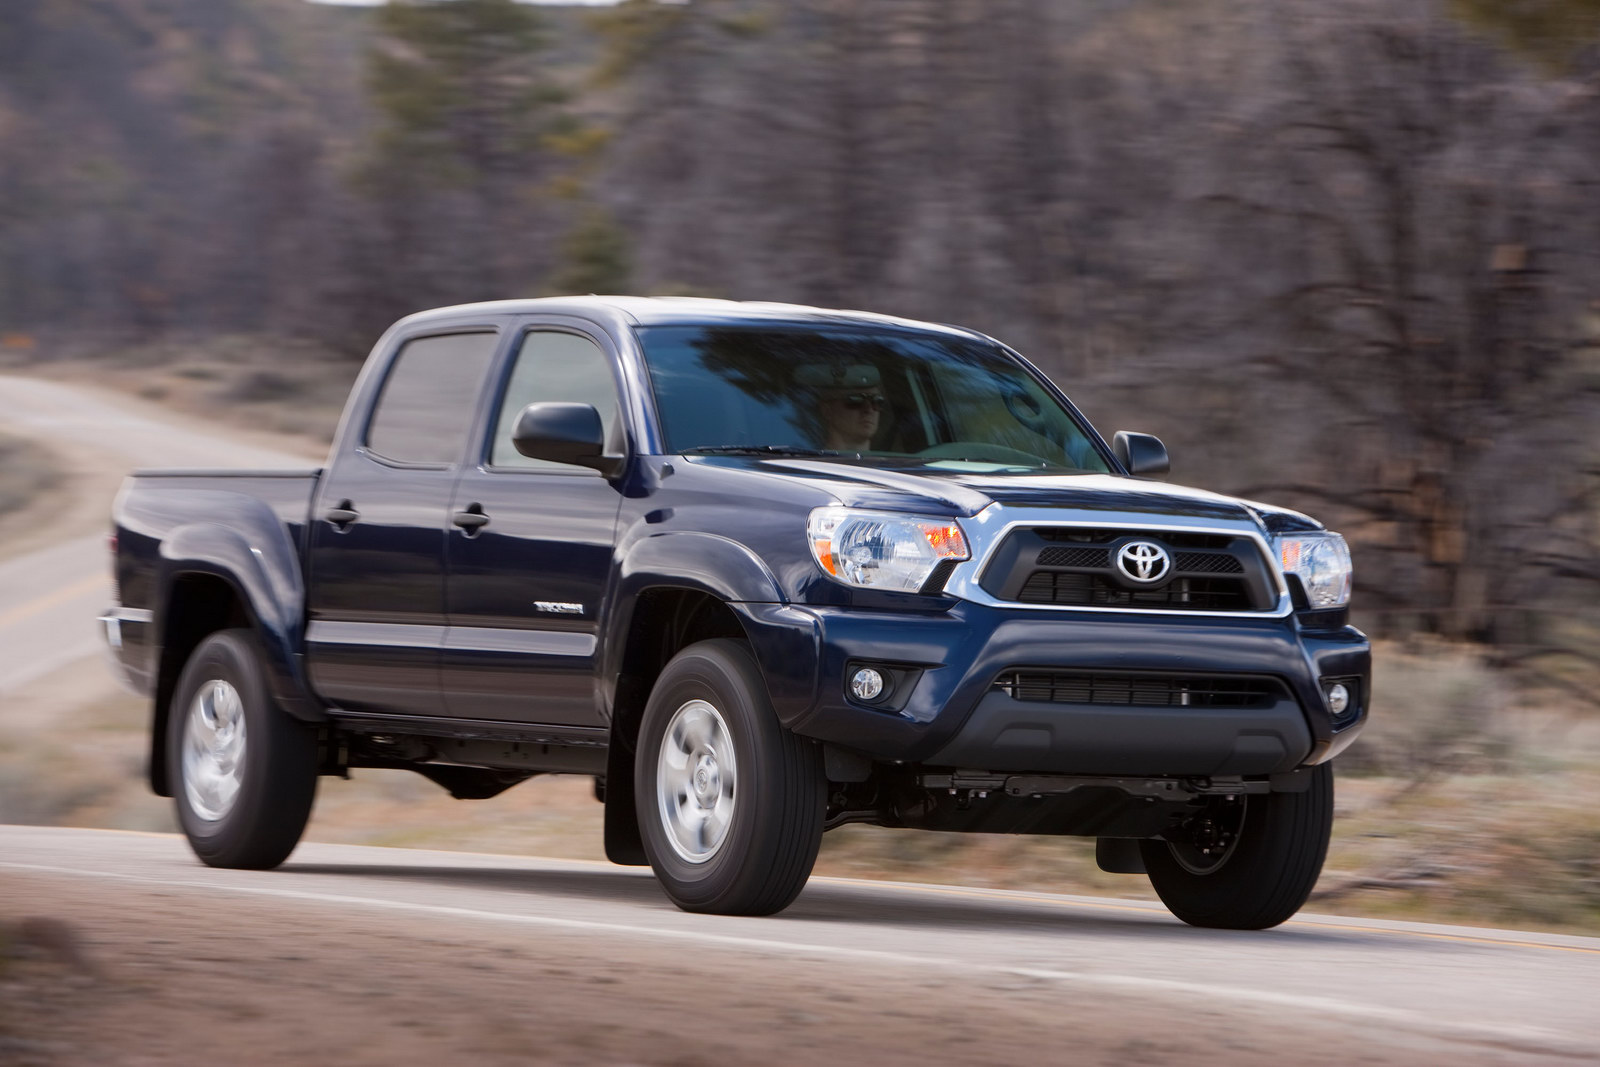 Toyota Tacoma 2012 photo - 2